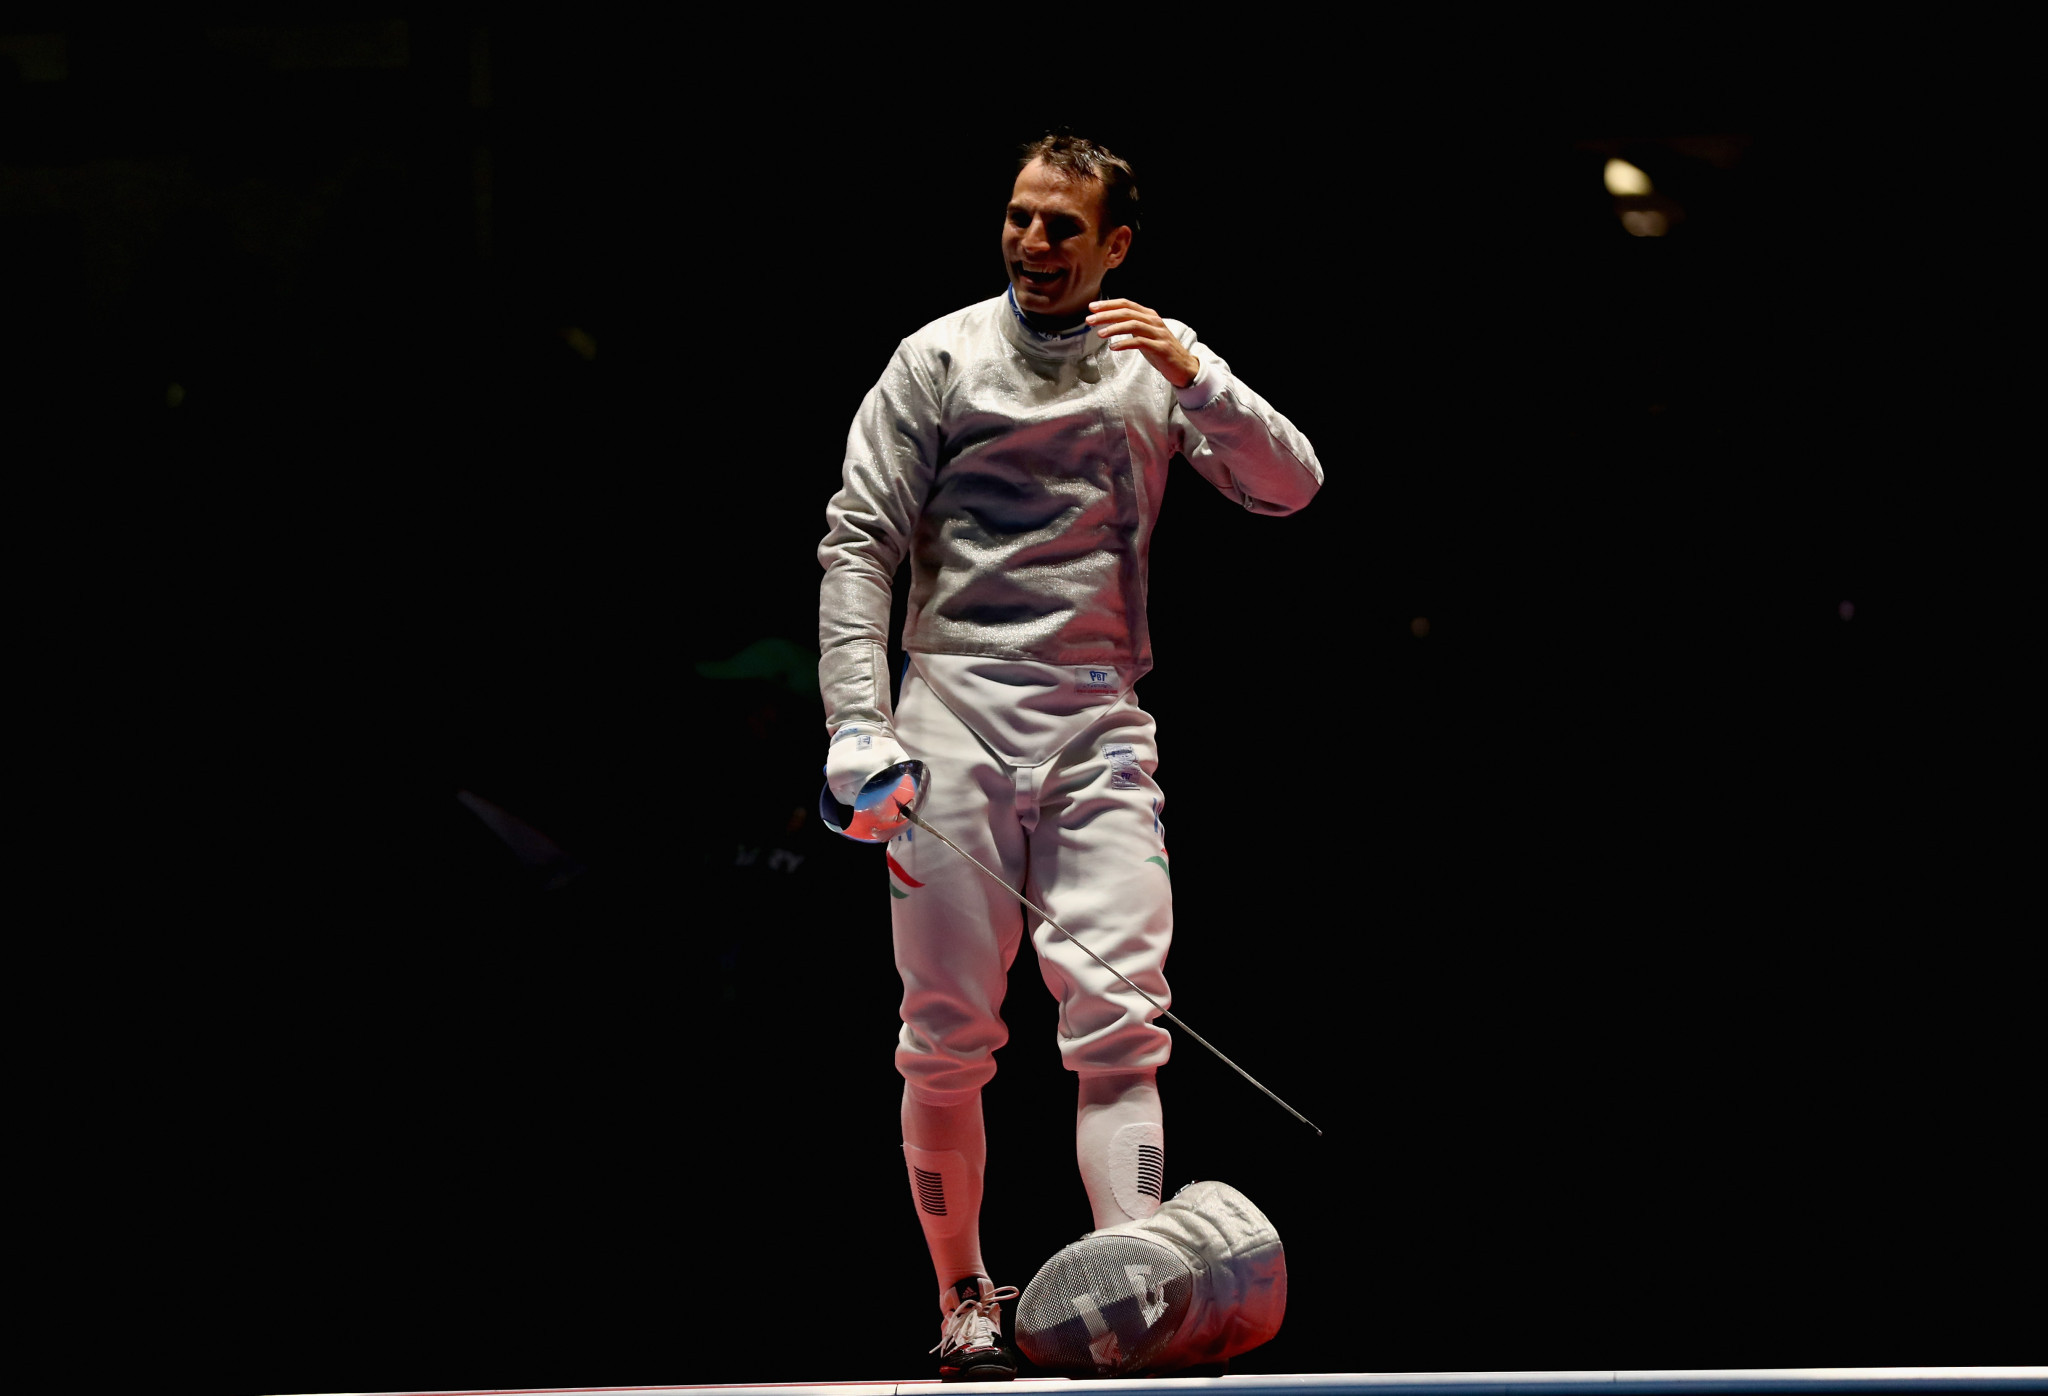 Two-time Olympic fencing champion Szilágyi eyeing more success at Tokyo 2020